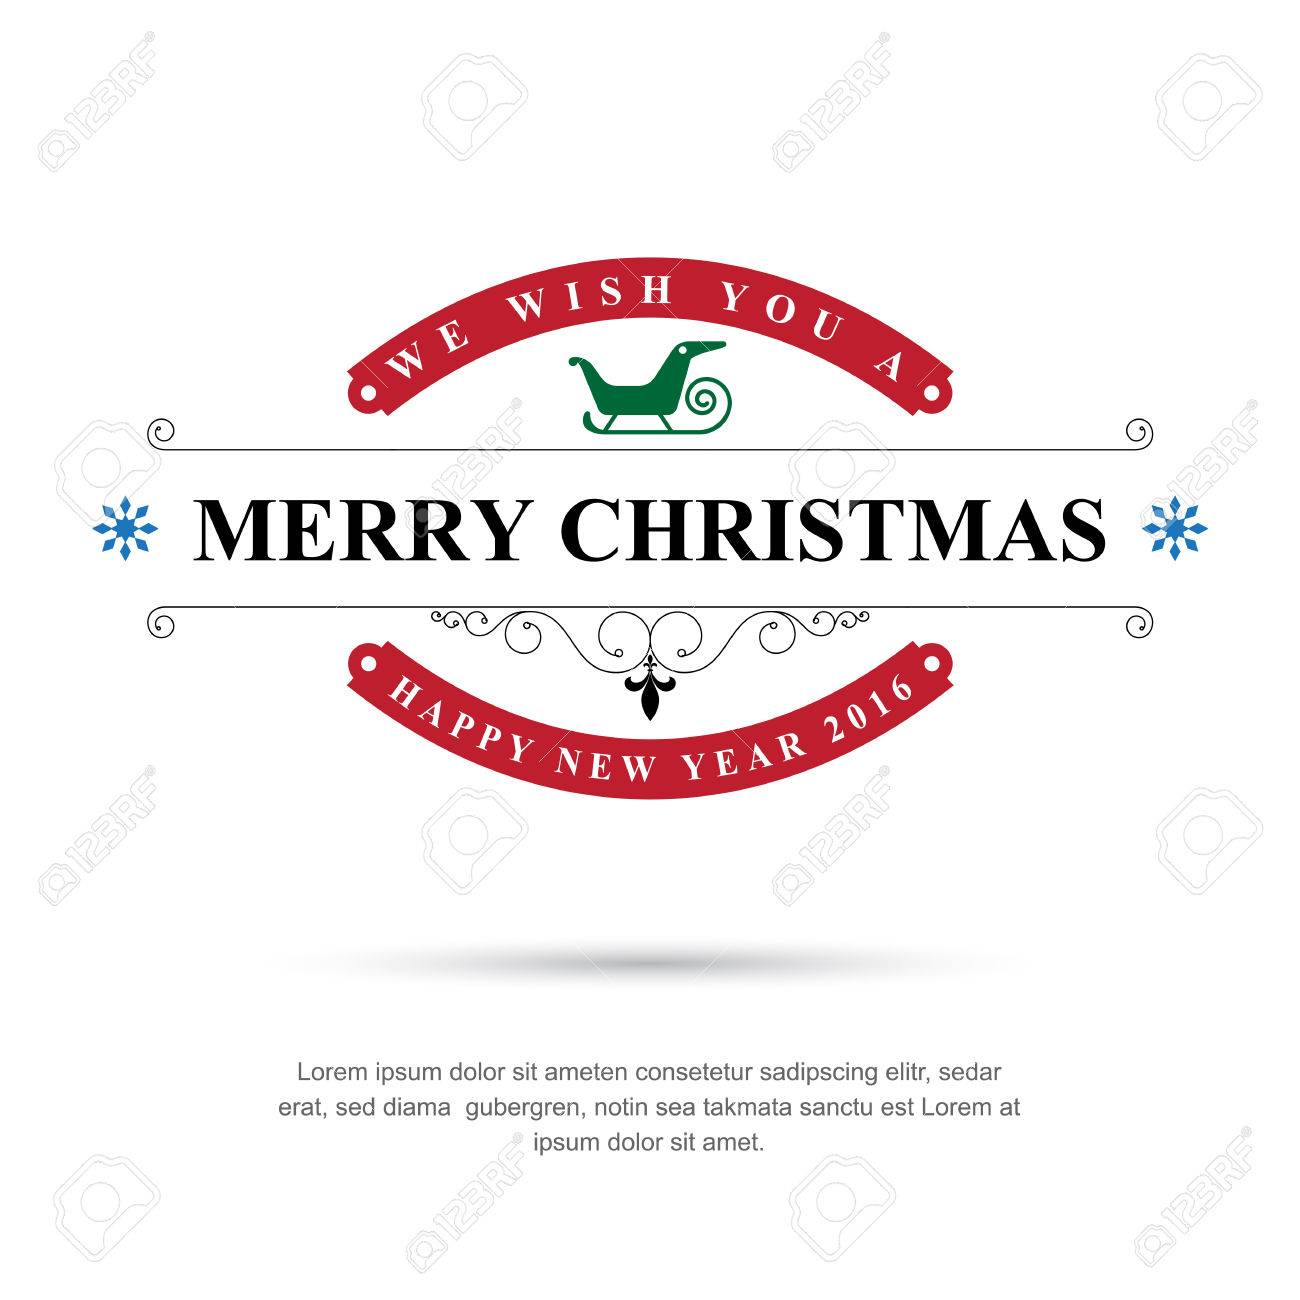 Merry Christmas and Happy New Year typographic background,Vector eps10 - 47039531